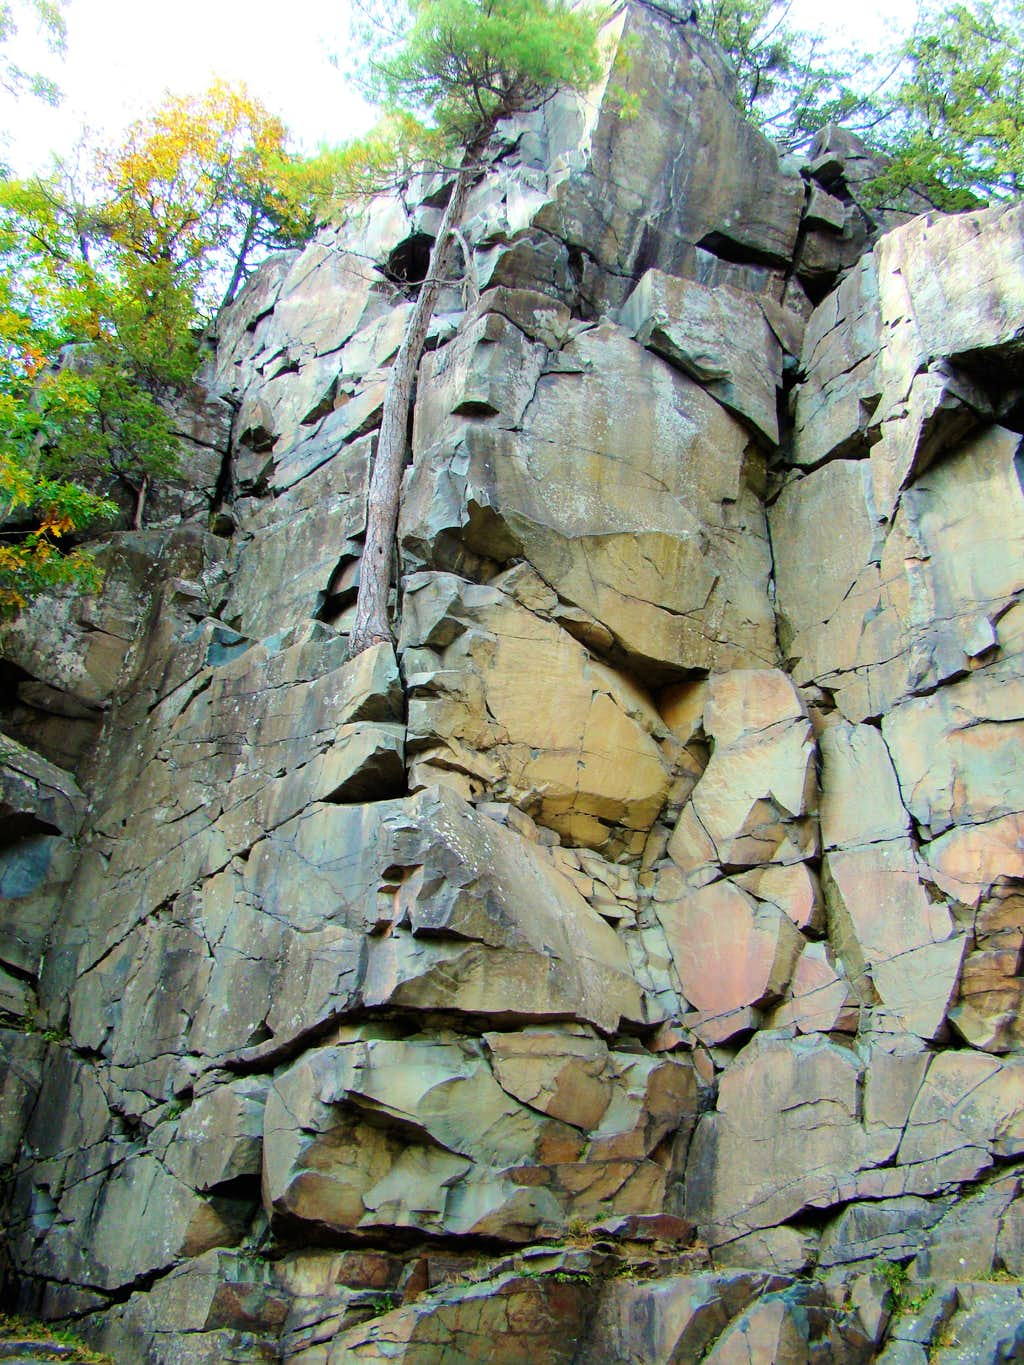 One of Many Rock Climbing Challenges